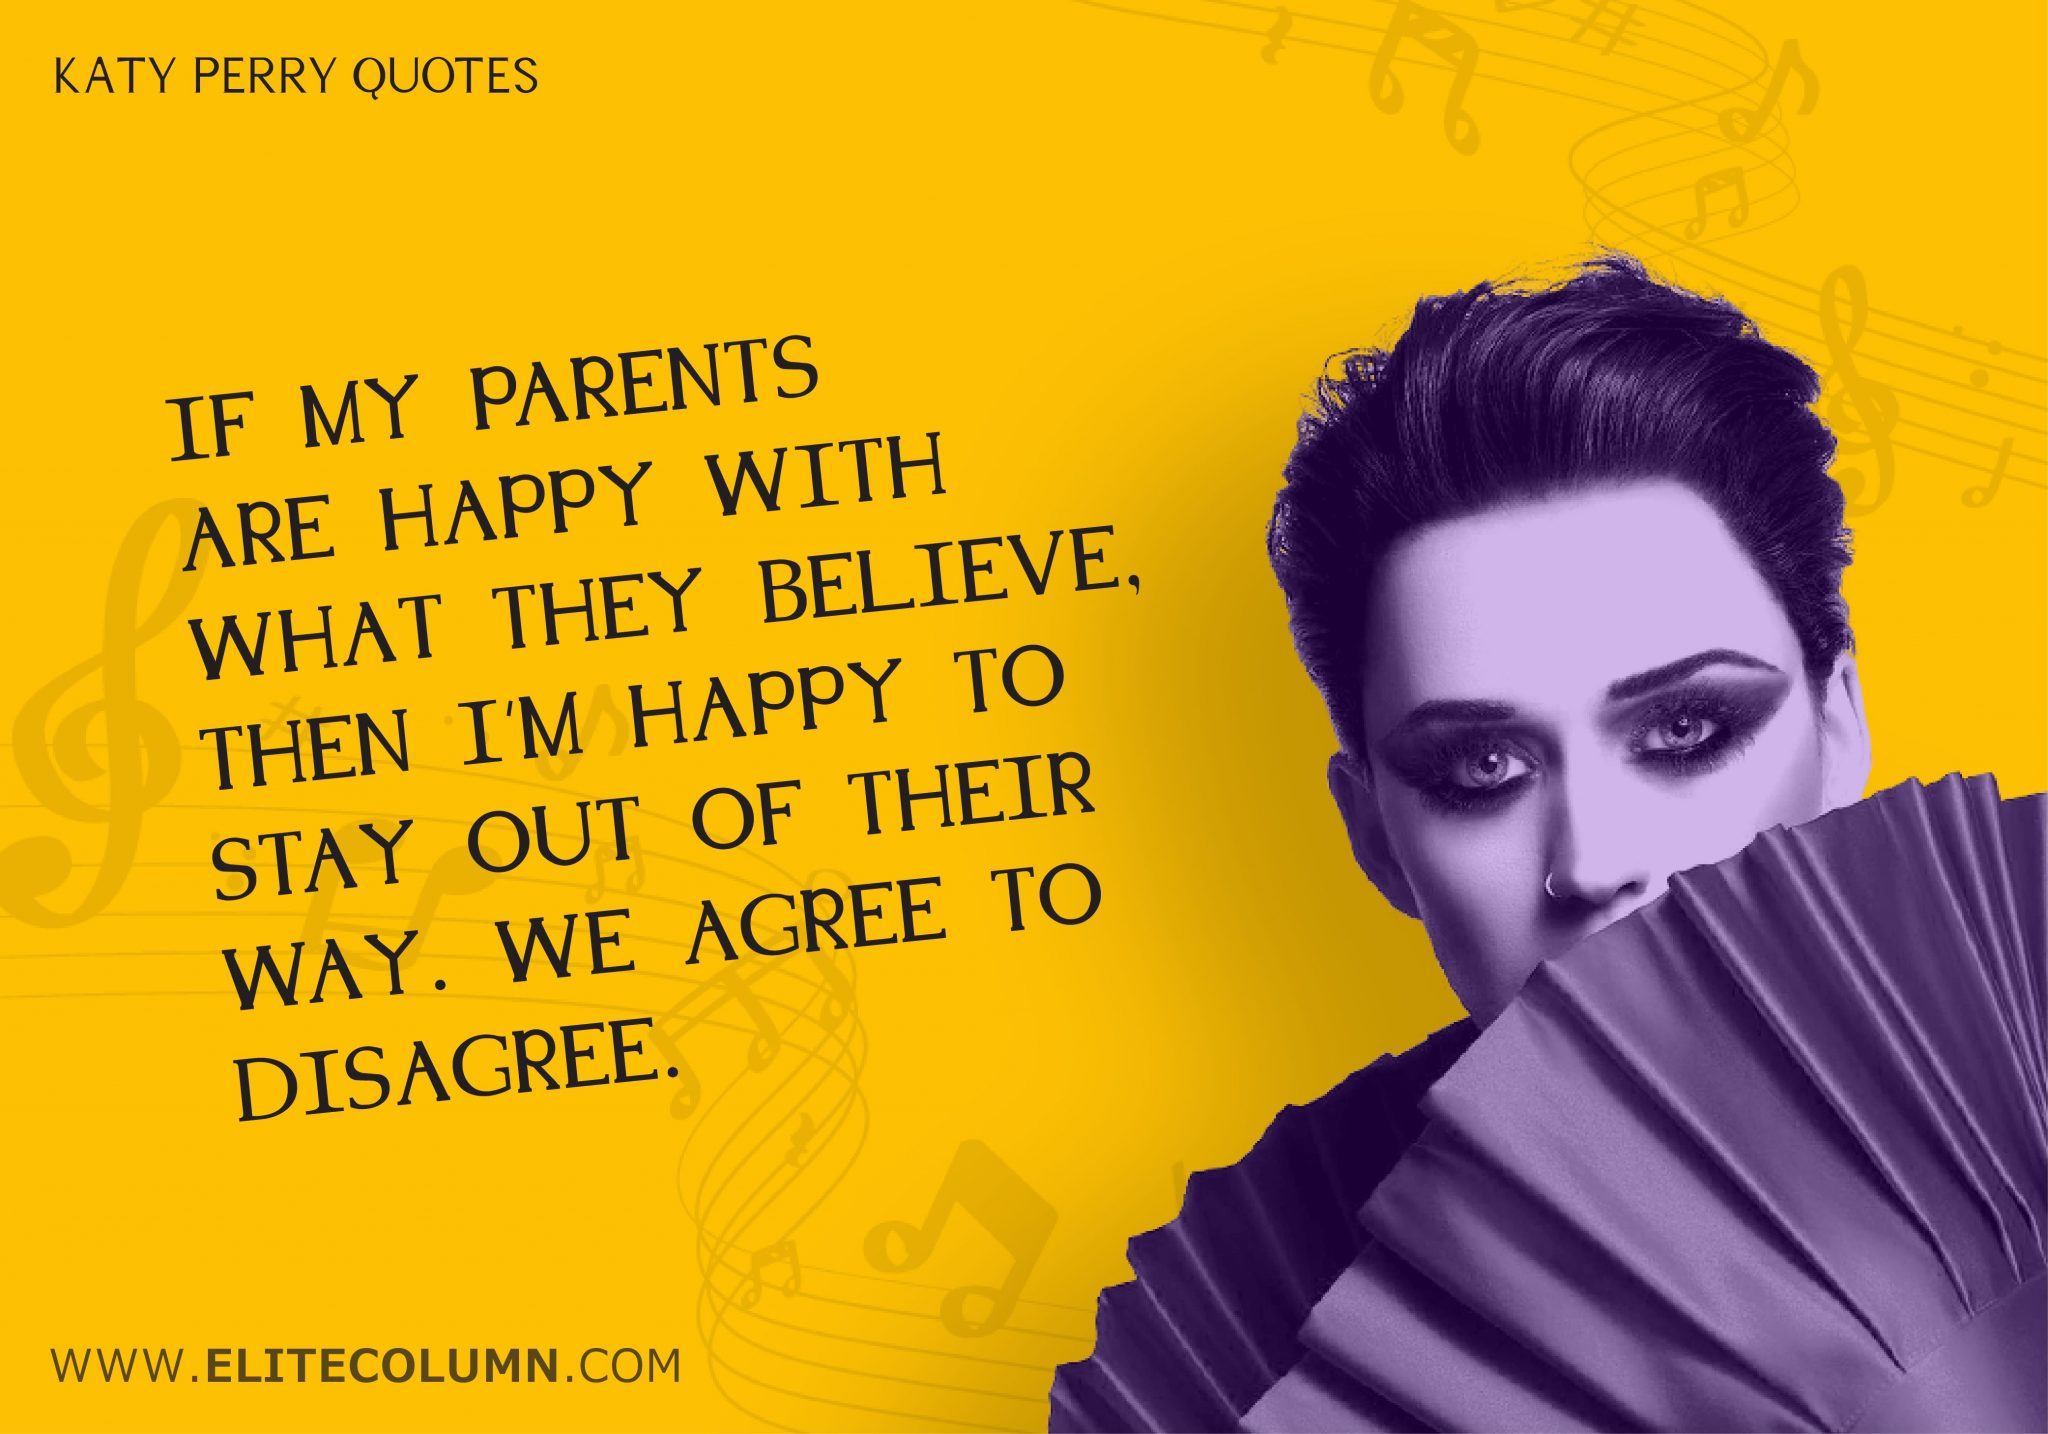 Katy Perry Quotes (11)